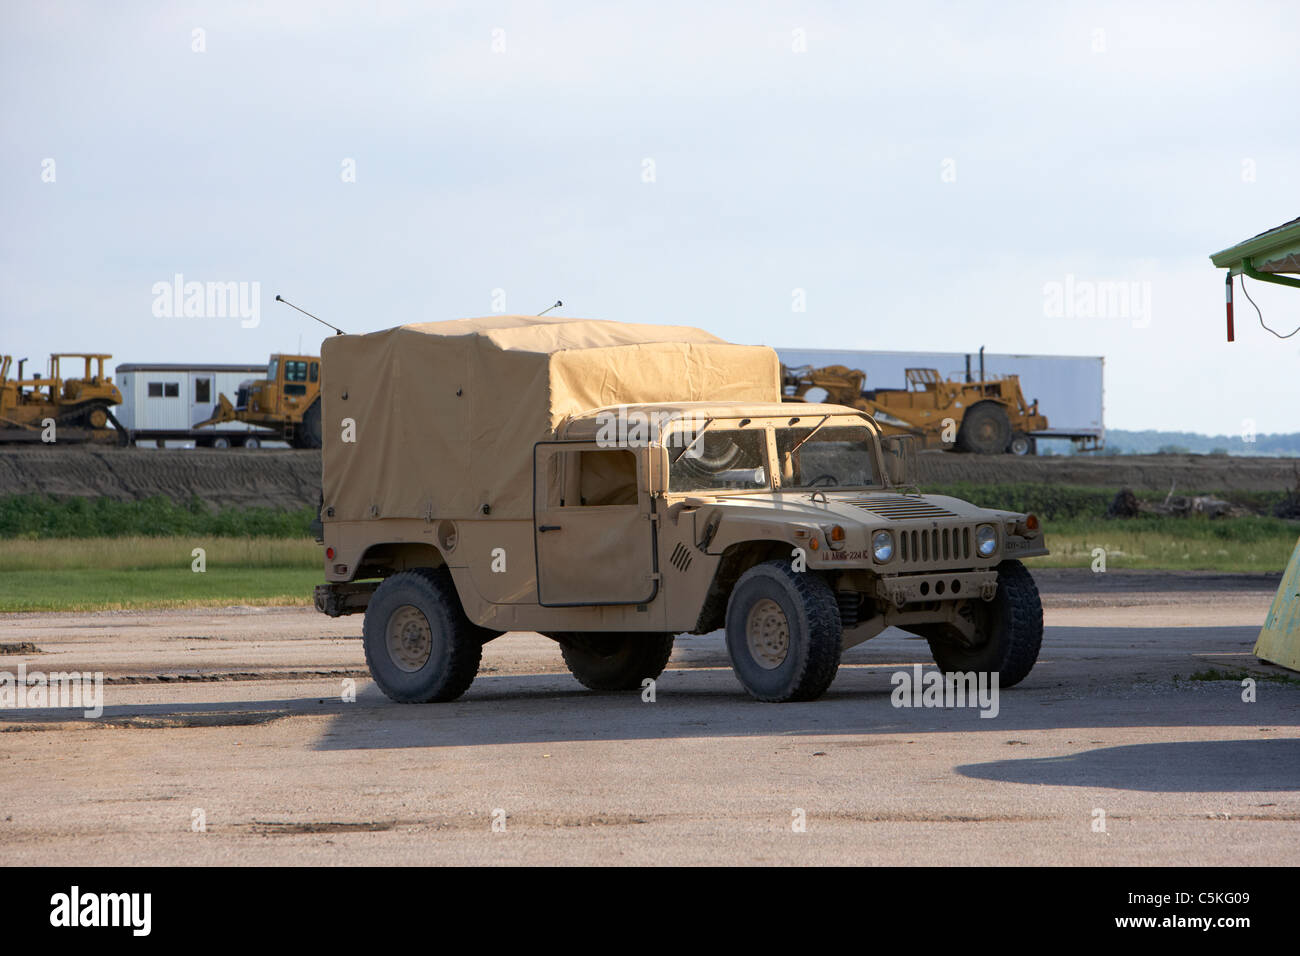 Iowa army national guard humvee united states military in front of levees at the missouri river - Stock Image